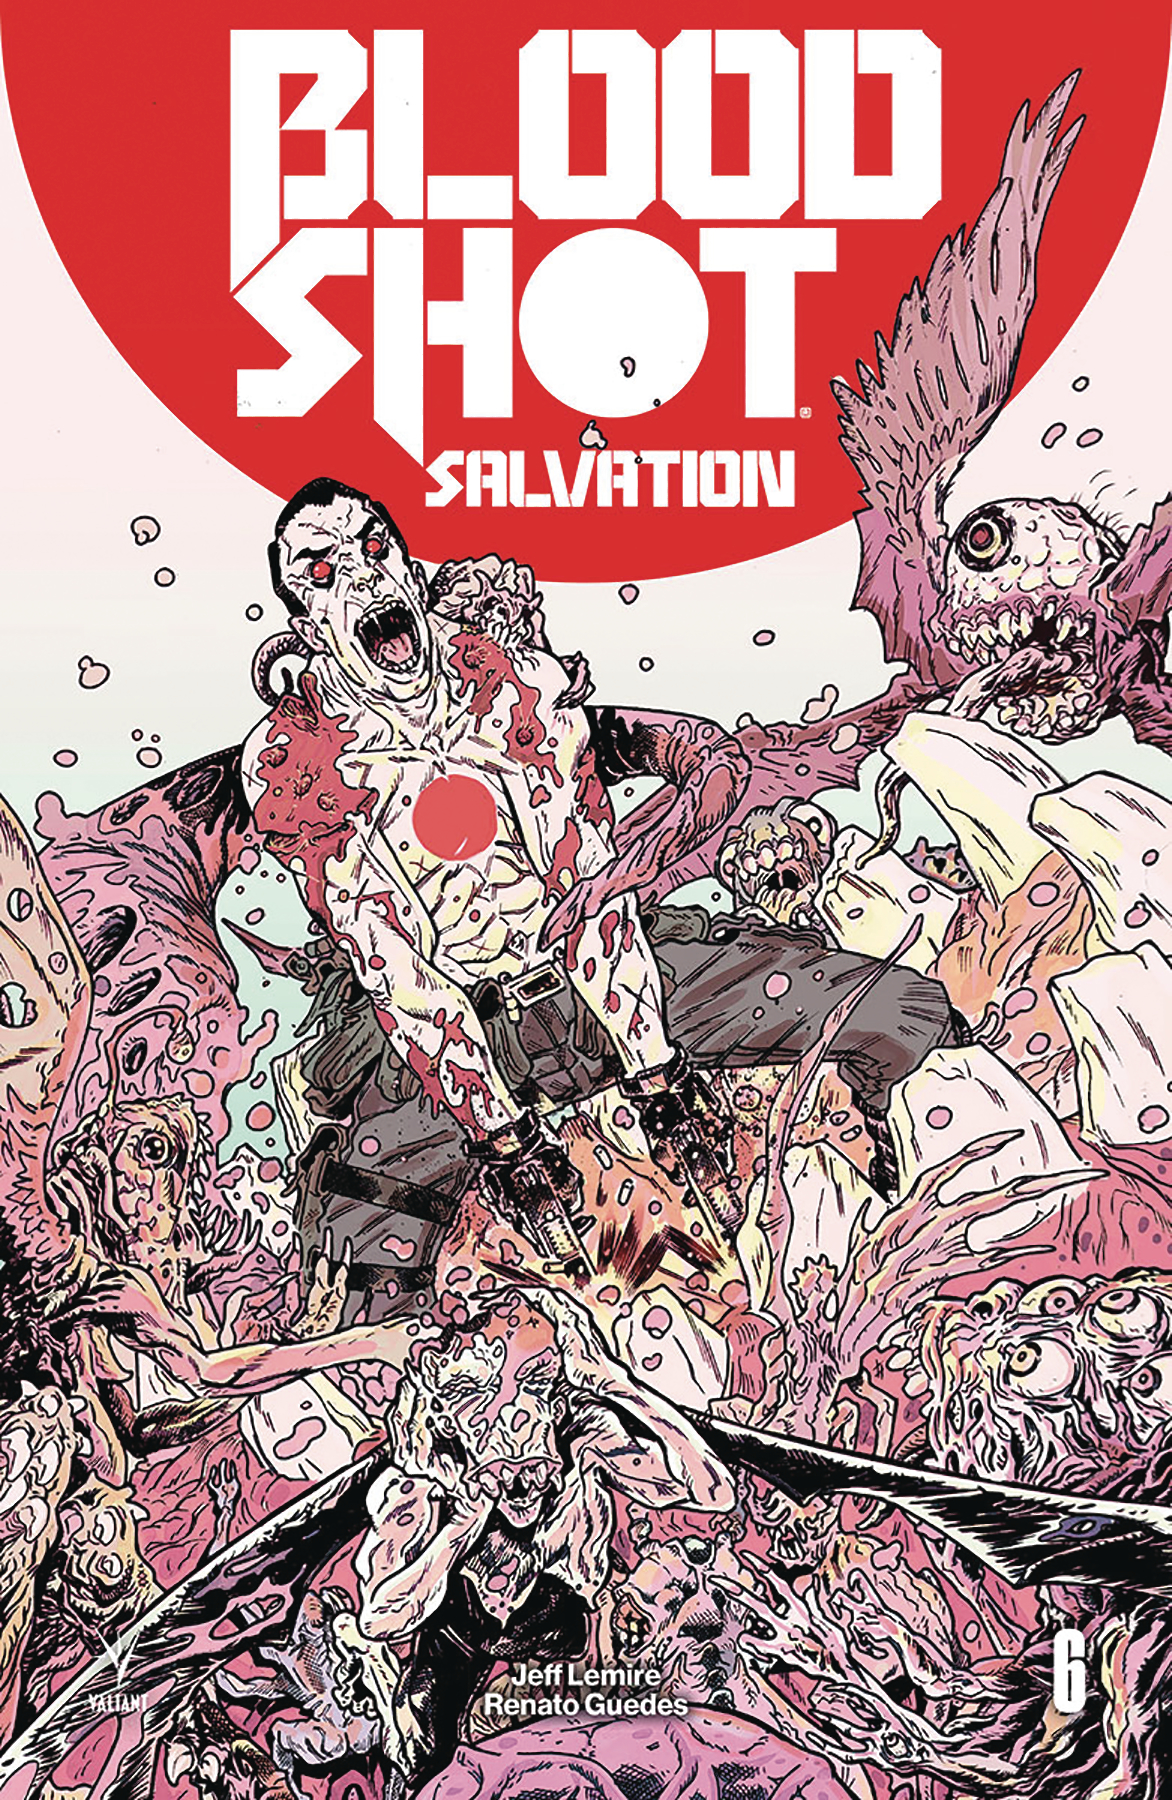 BLOODSHOT SALVATION #6 CVR C BIVENS